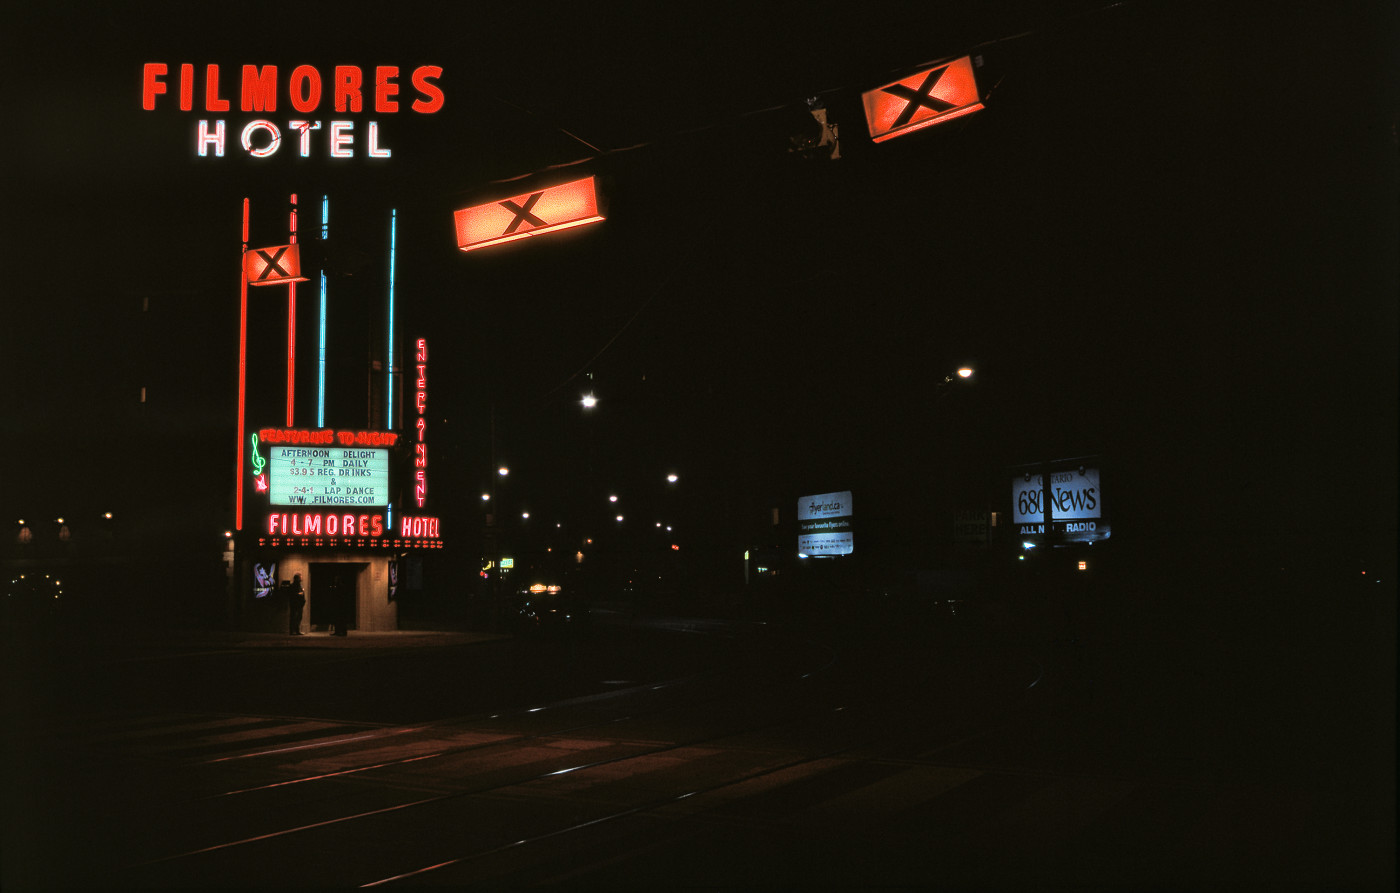 The craft neon wayfinding legibility of Filmores Hotel: a varicoloured beacon hailing from the sunset of Toronto's manufacturing age, 17 May 2008. [Idlewild]